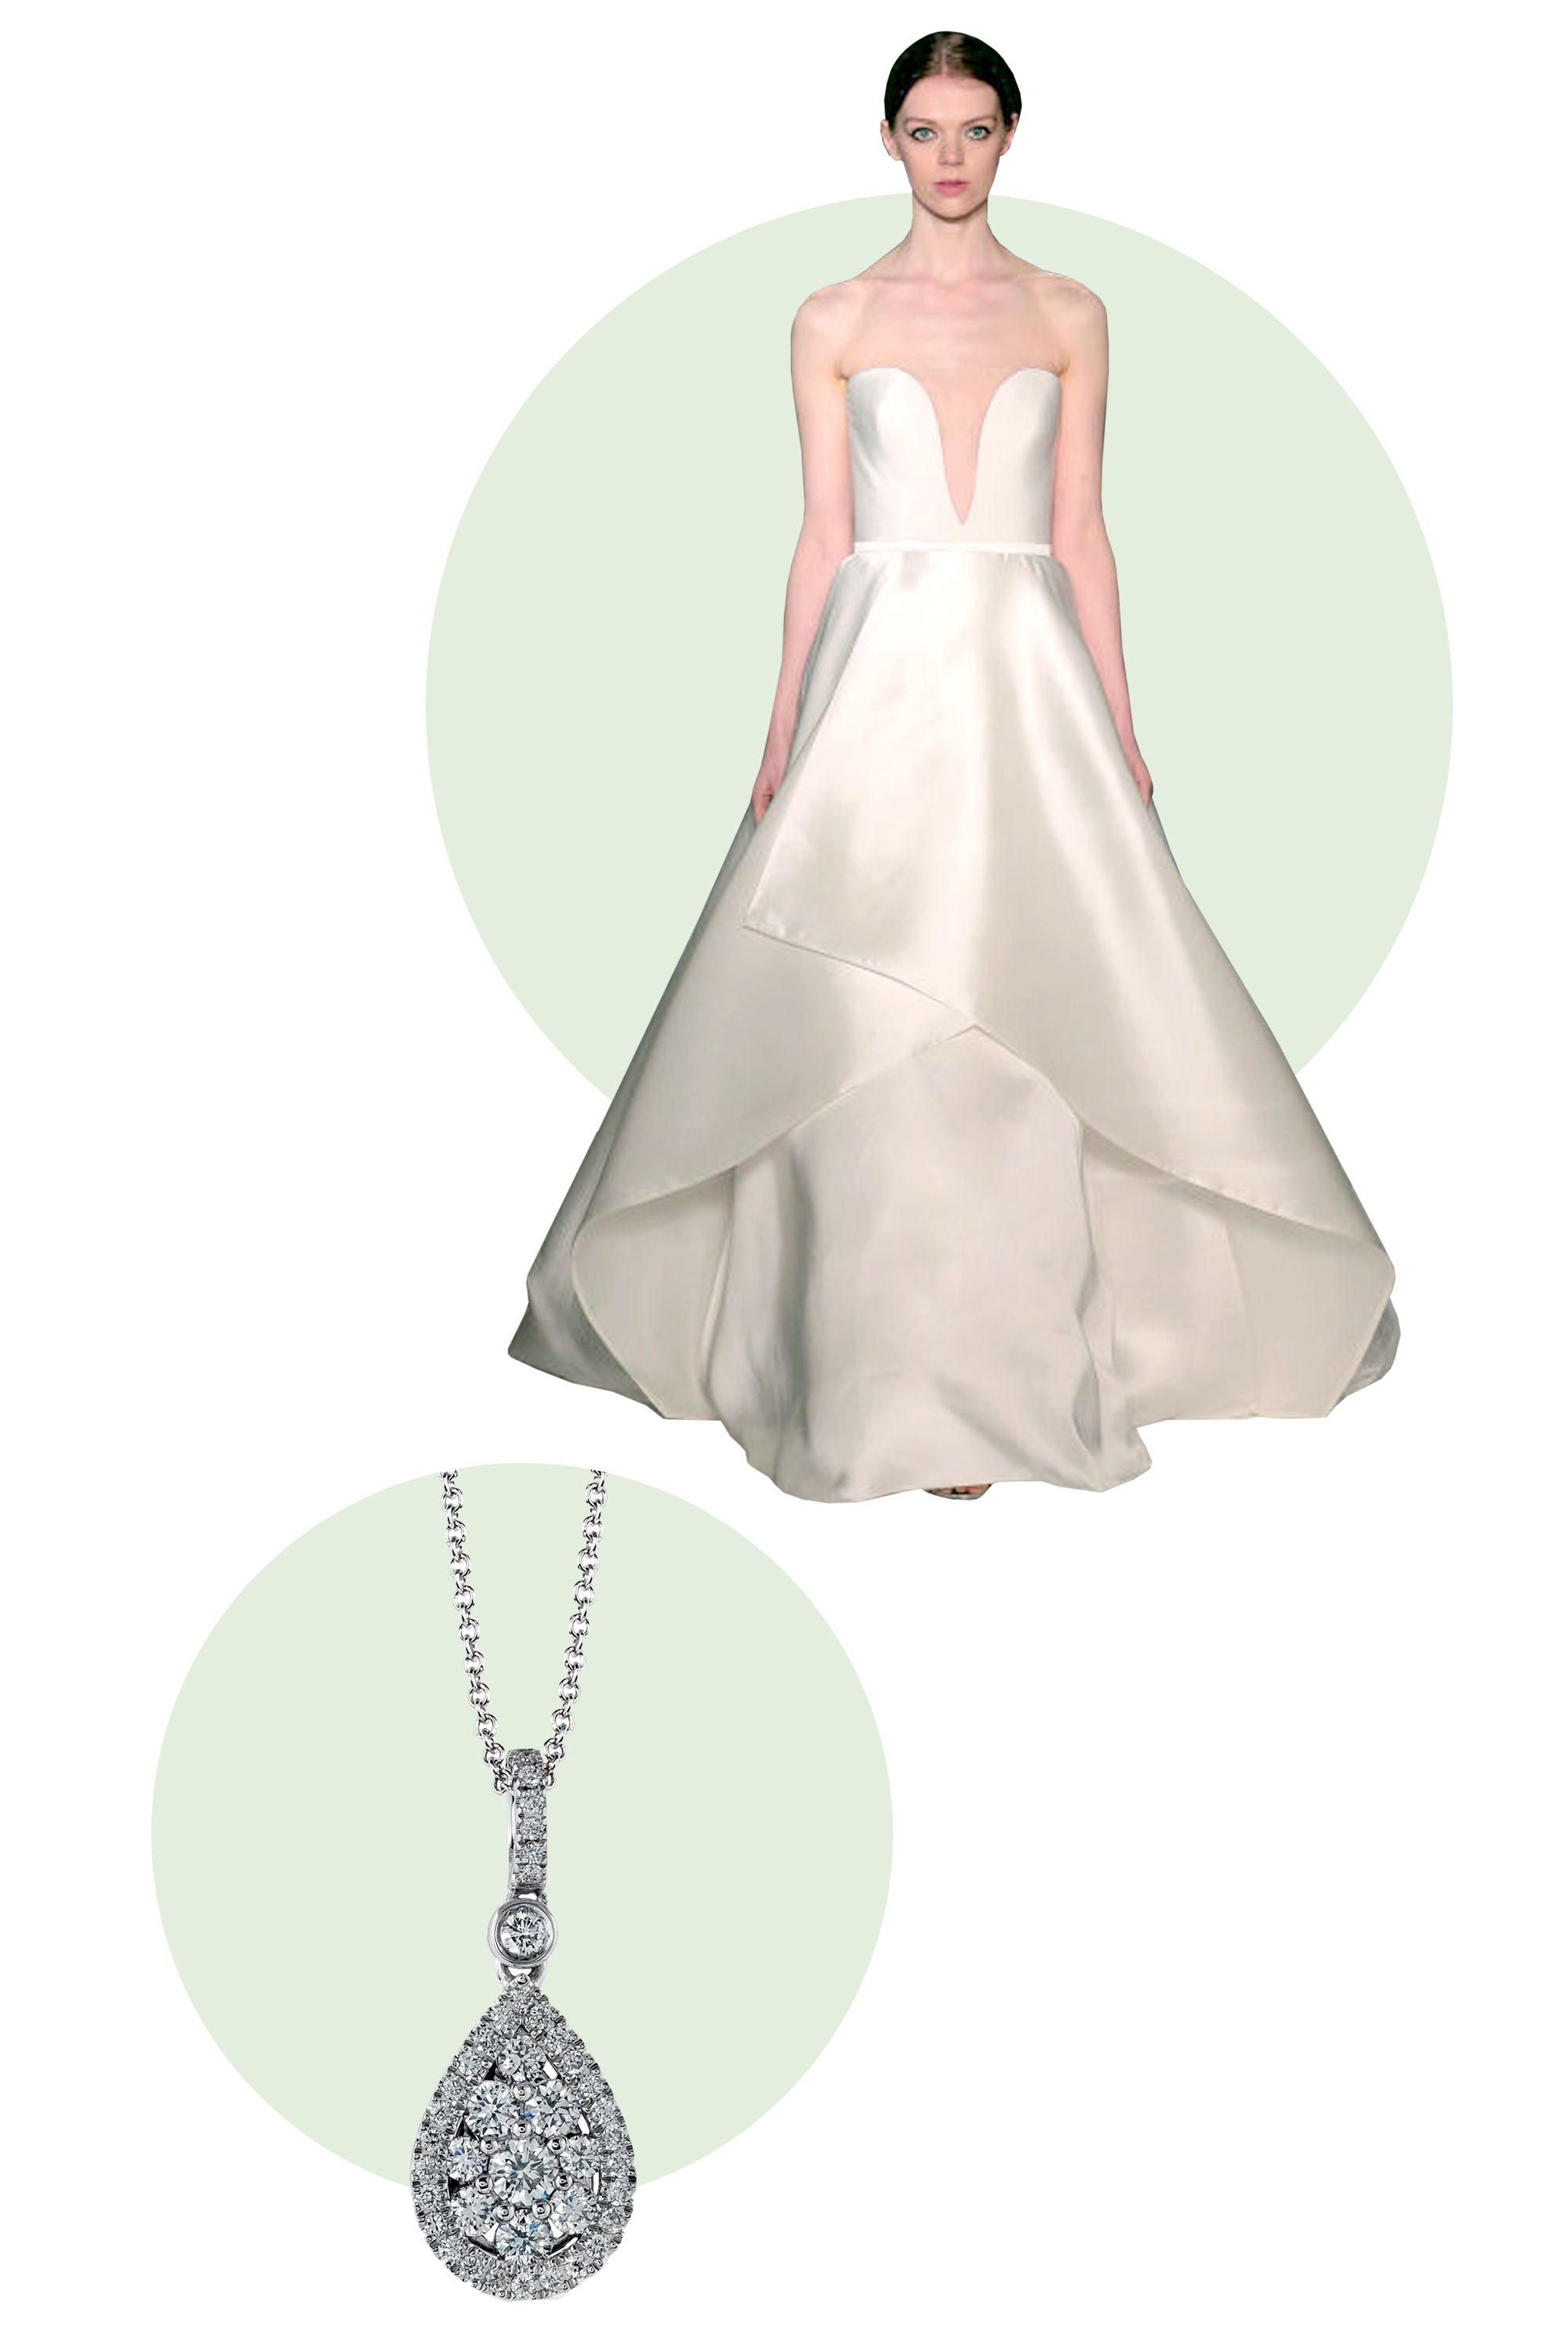 """<p>Add a delicate pendant necklace to a gown with a low v-neck. It will give just the right amount of glitz to an otherwise simple look.</p> <p><em>Simon G. Caviar Collection Pendant, $2,200; <a target=""""_blank"""" href=""""http://www.simongjewelry.com/product/lp4247-pendant/"""">simongjewelry.com</a></em></p> <p><em>Dress, Reem Acra Spring 2016</em></p>"""